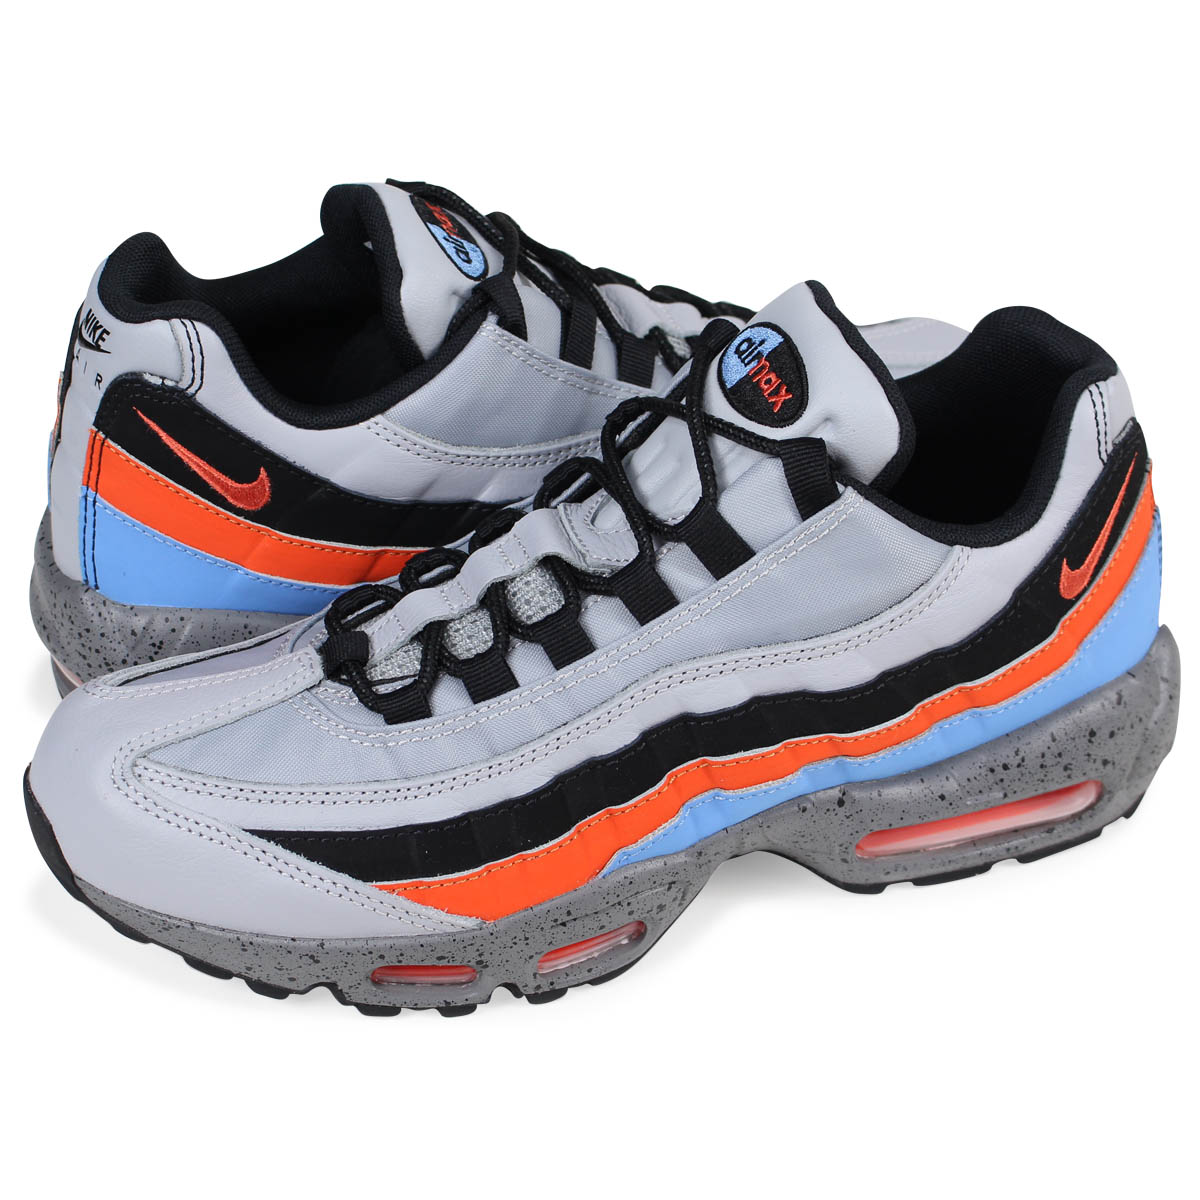 buy online 9d383 d175e Whats up Sports  NIKE AIR MAX 95 PREMIUM Kie Ney AMAX 95 premium sneakers  men 538,416-015 gray  load planned Shinnyu load in reservation product 2 9  ...